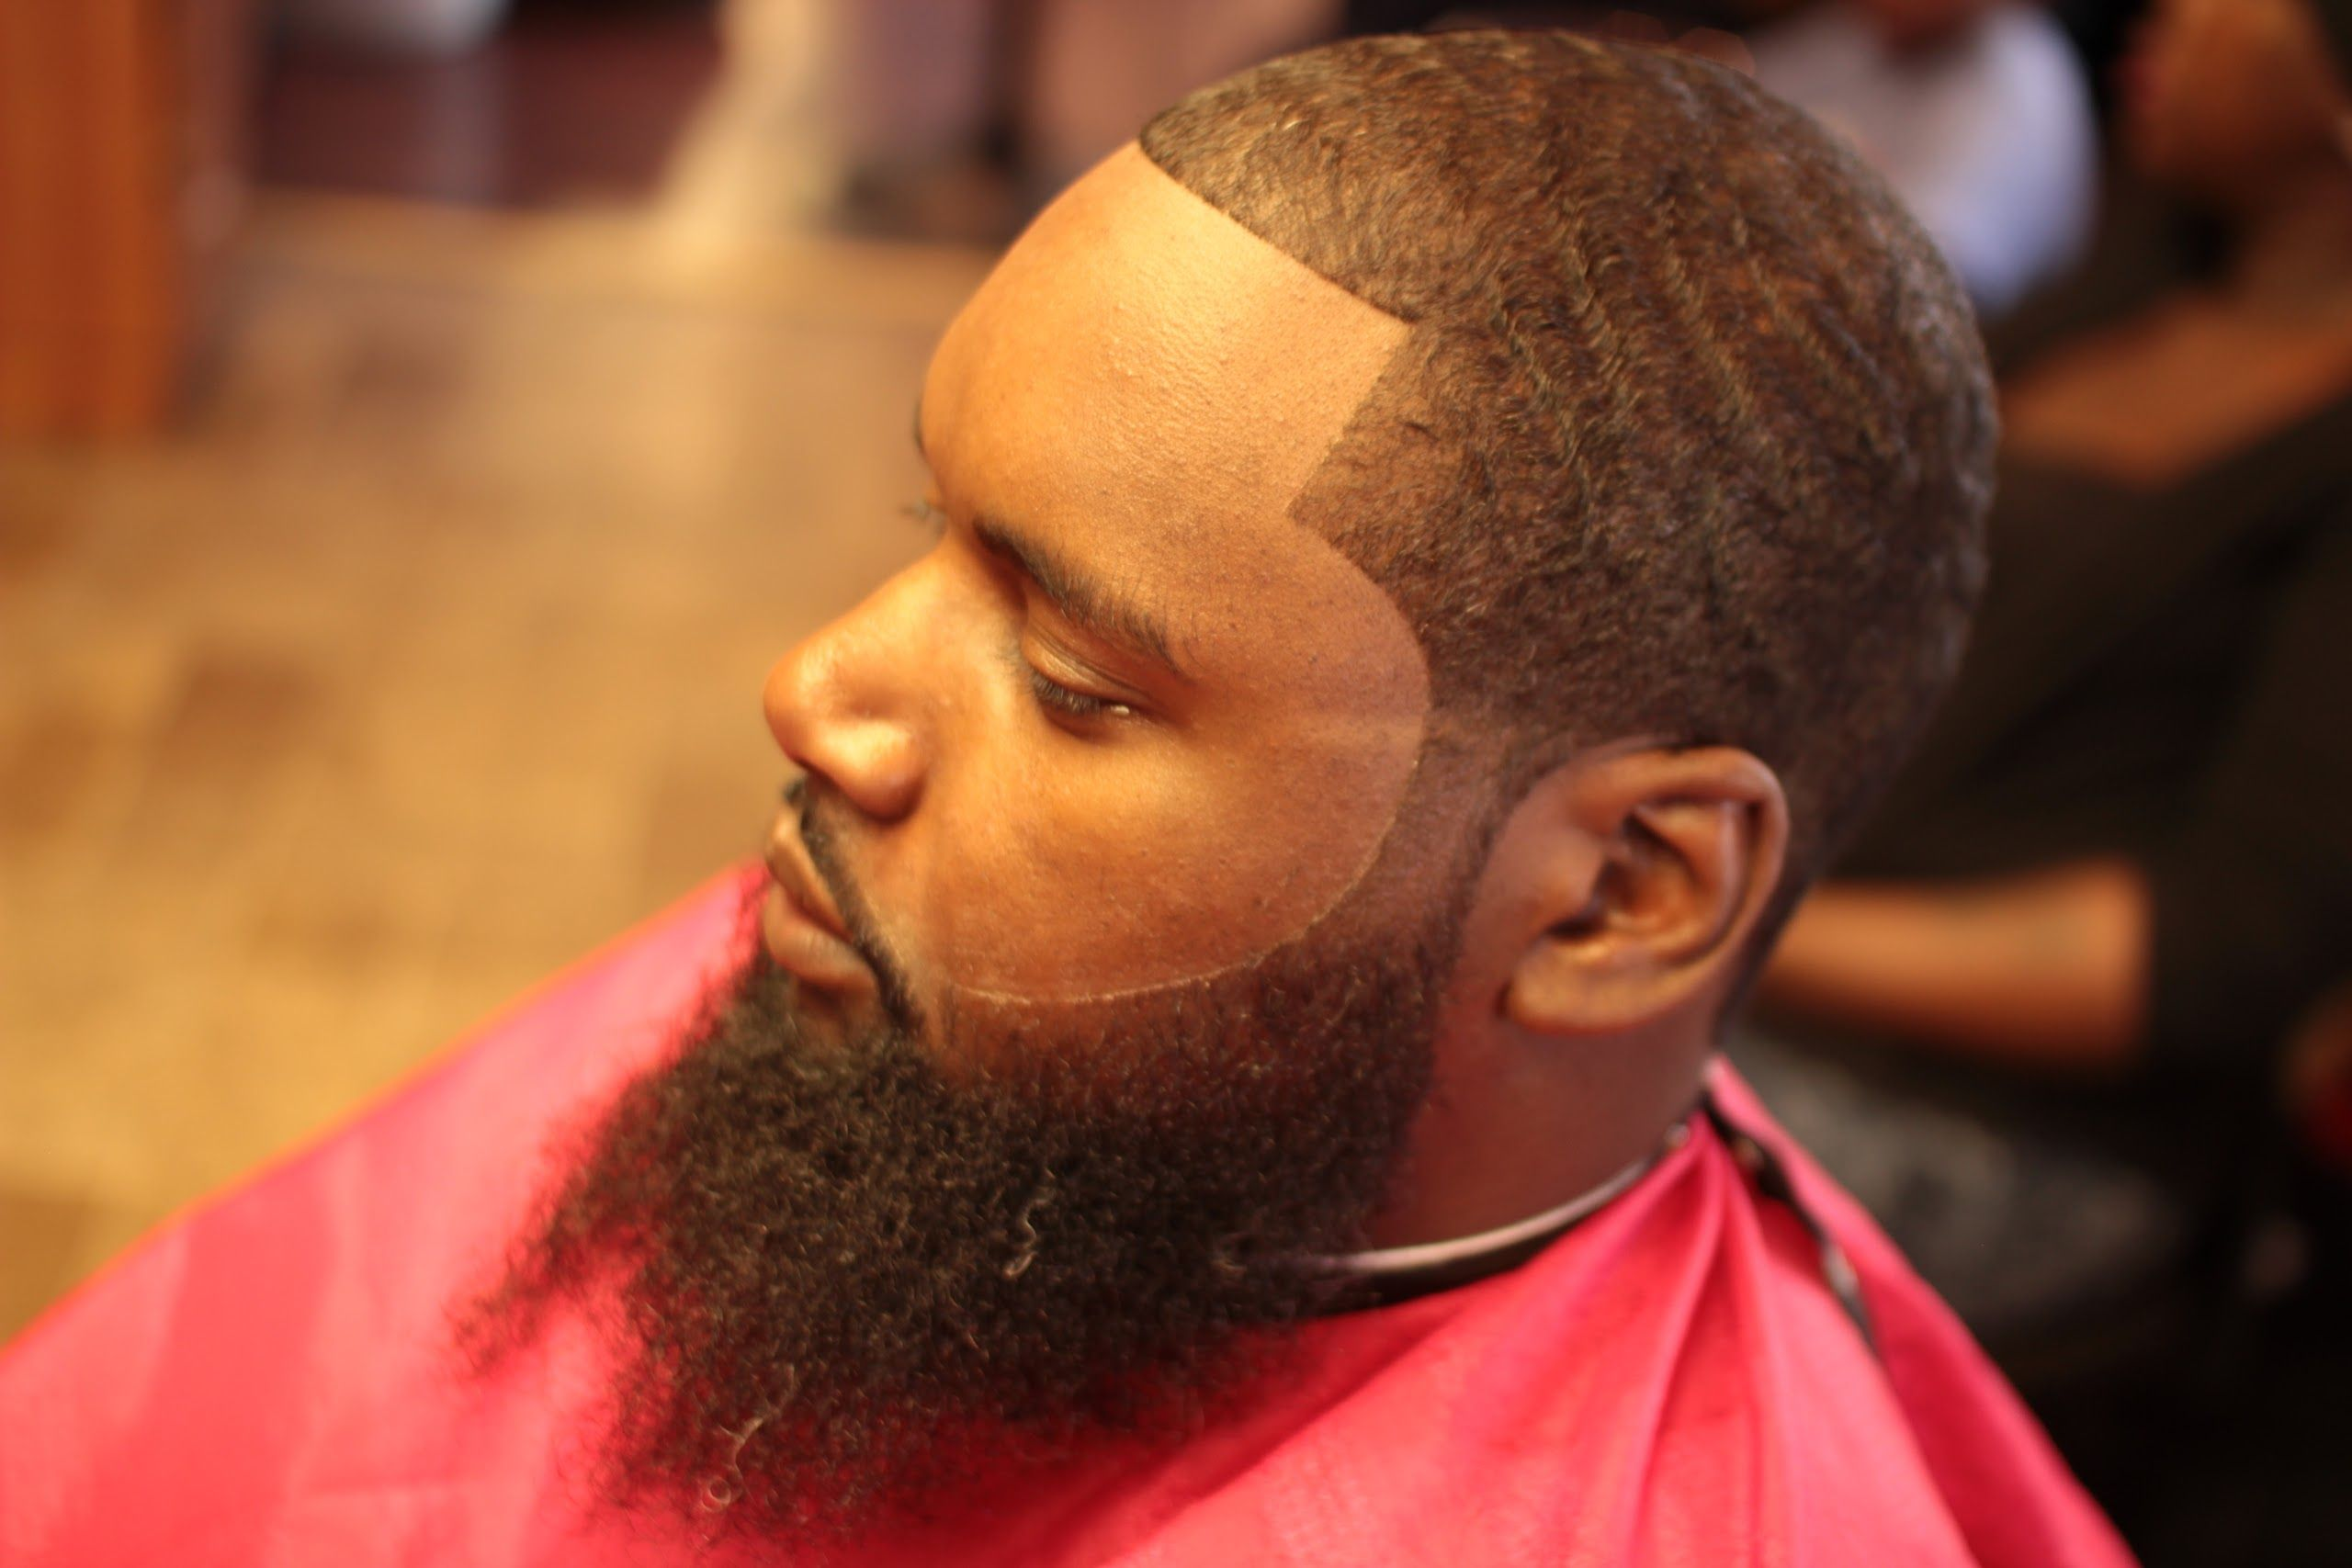 Pin By Faheem S Hands Of Precision On Faheem S Hands Of Precision Beard Styles For Men Hair Motivation Professional Haircut